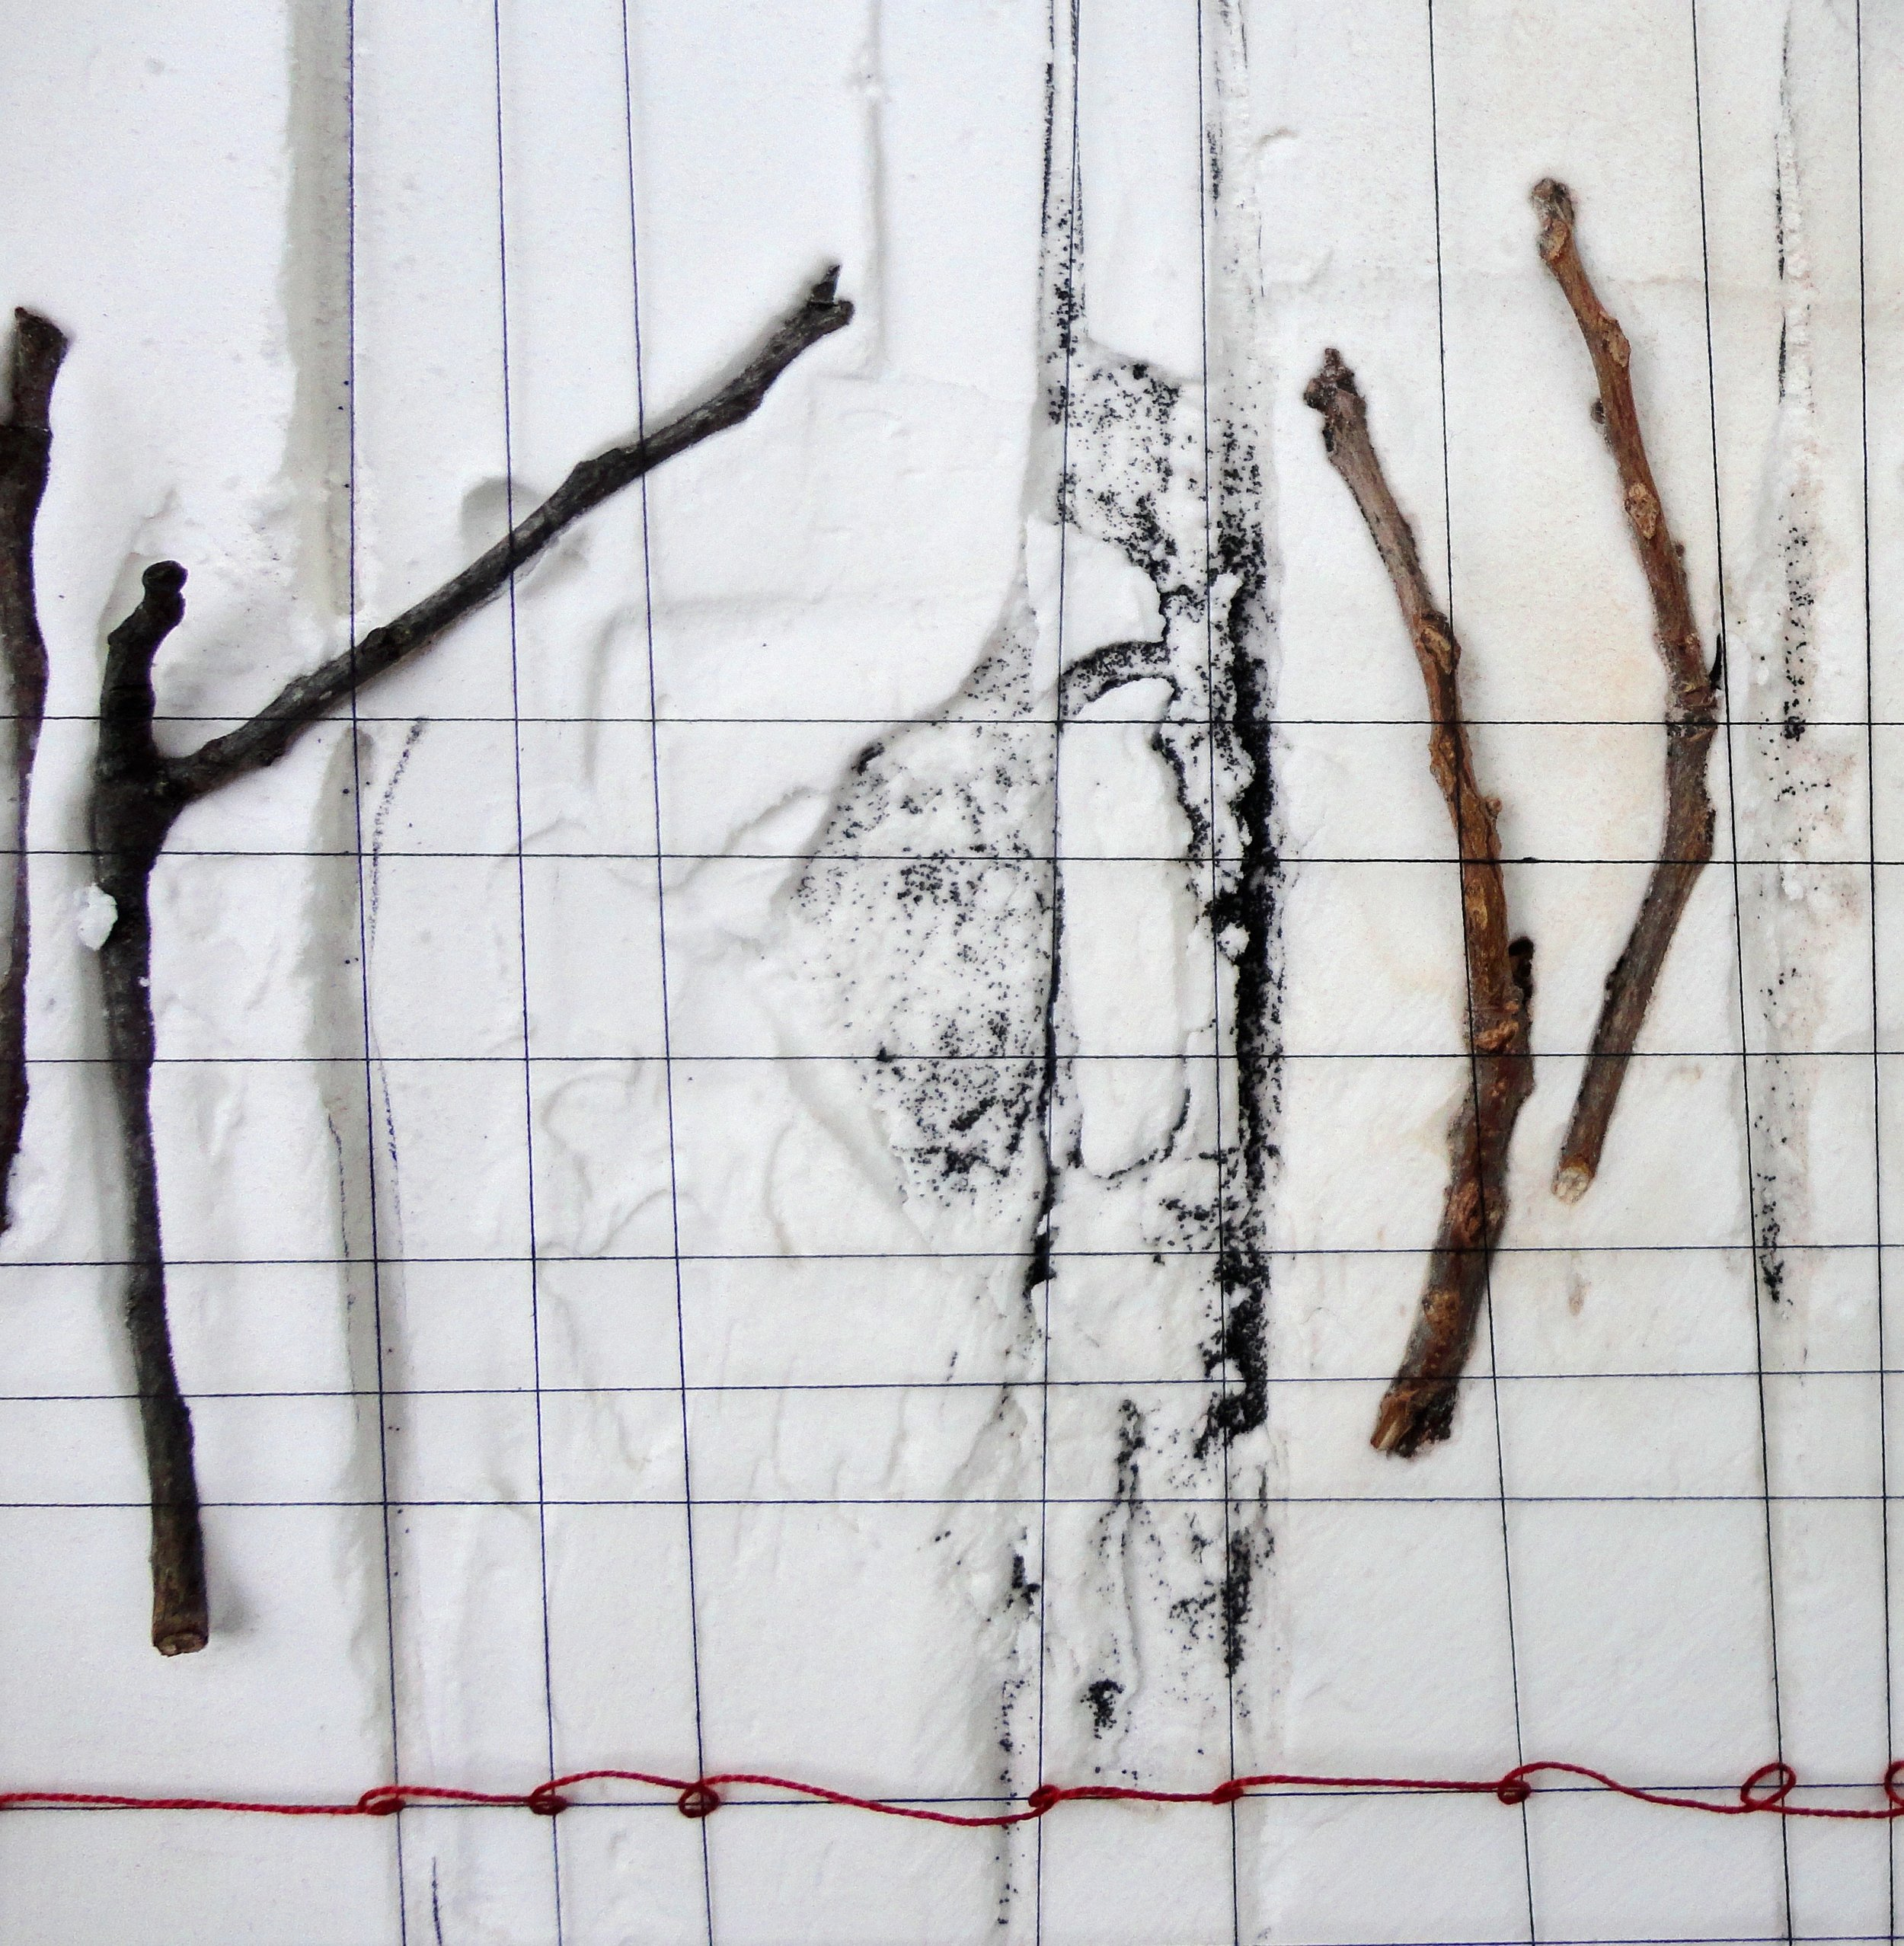 Untitled (Sticks) - Detail